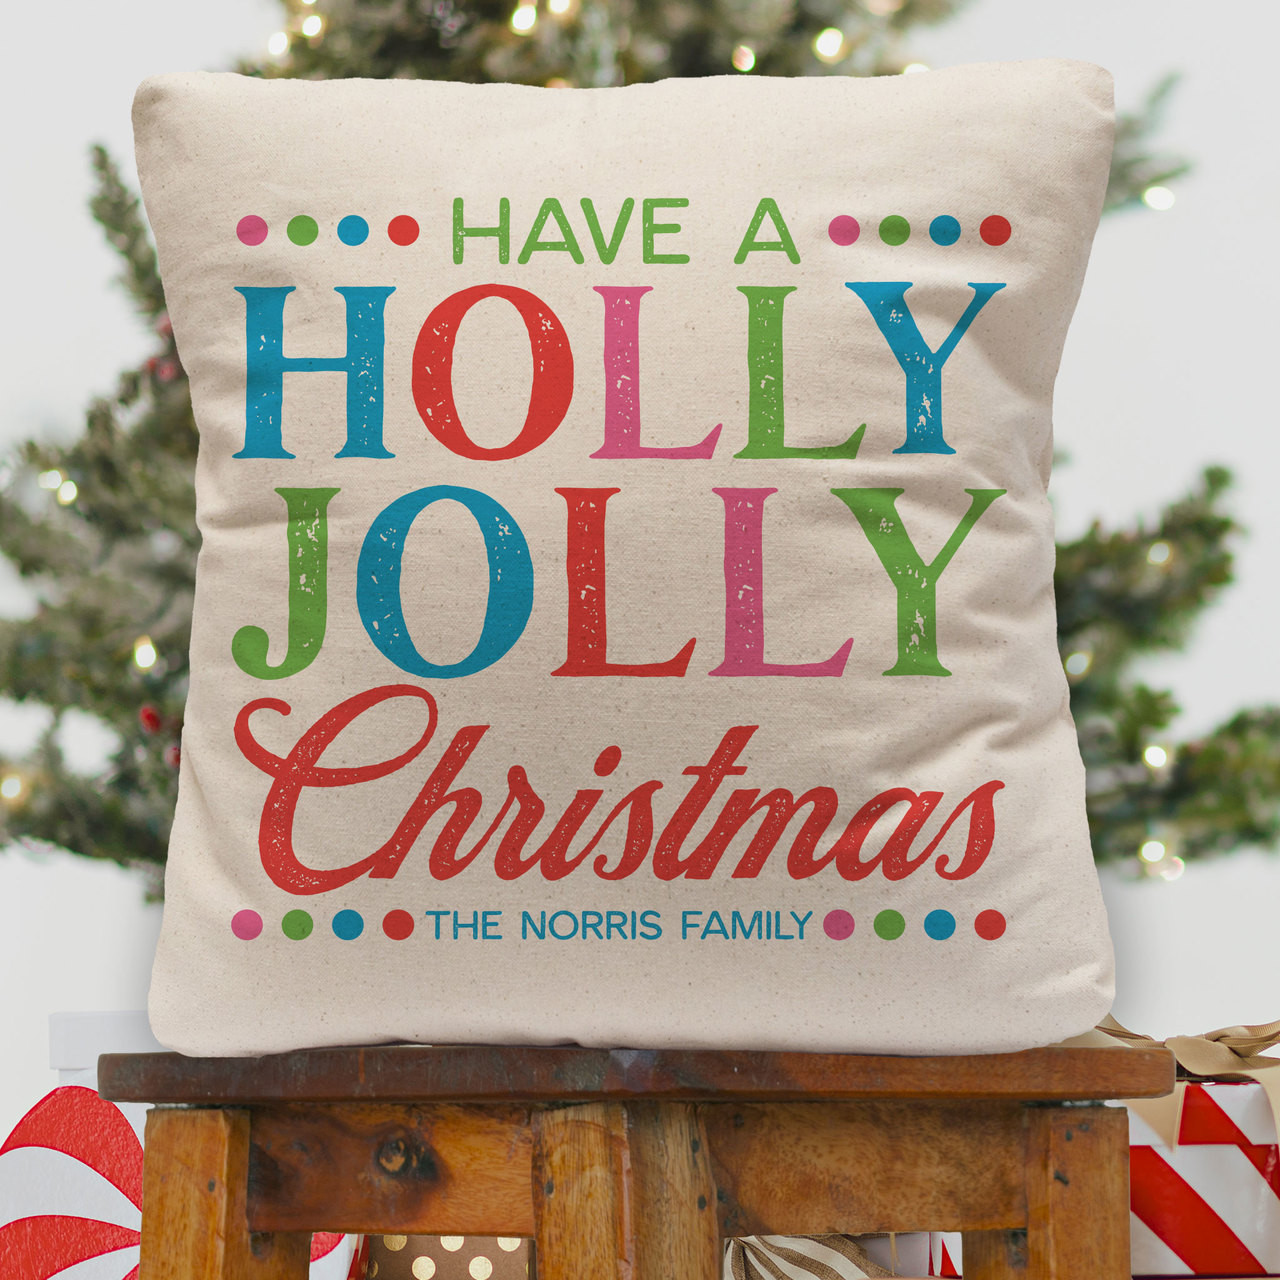 Holly Jolly Christmas.Personalized Holly Jolly Christmas Throw Pillow Cover